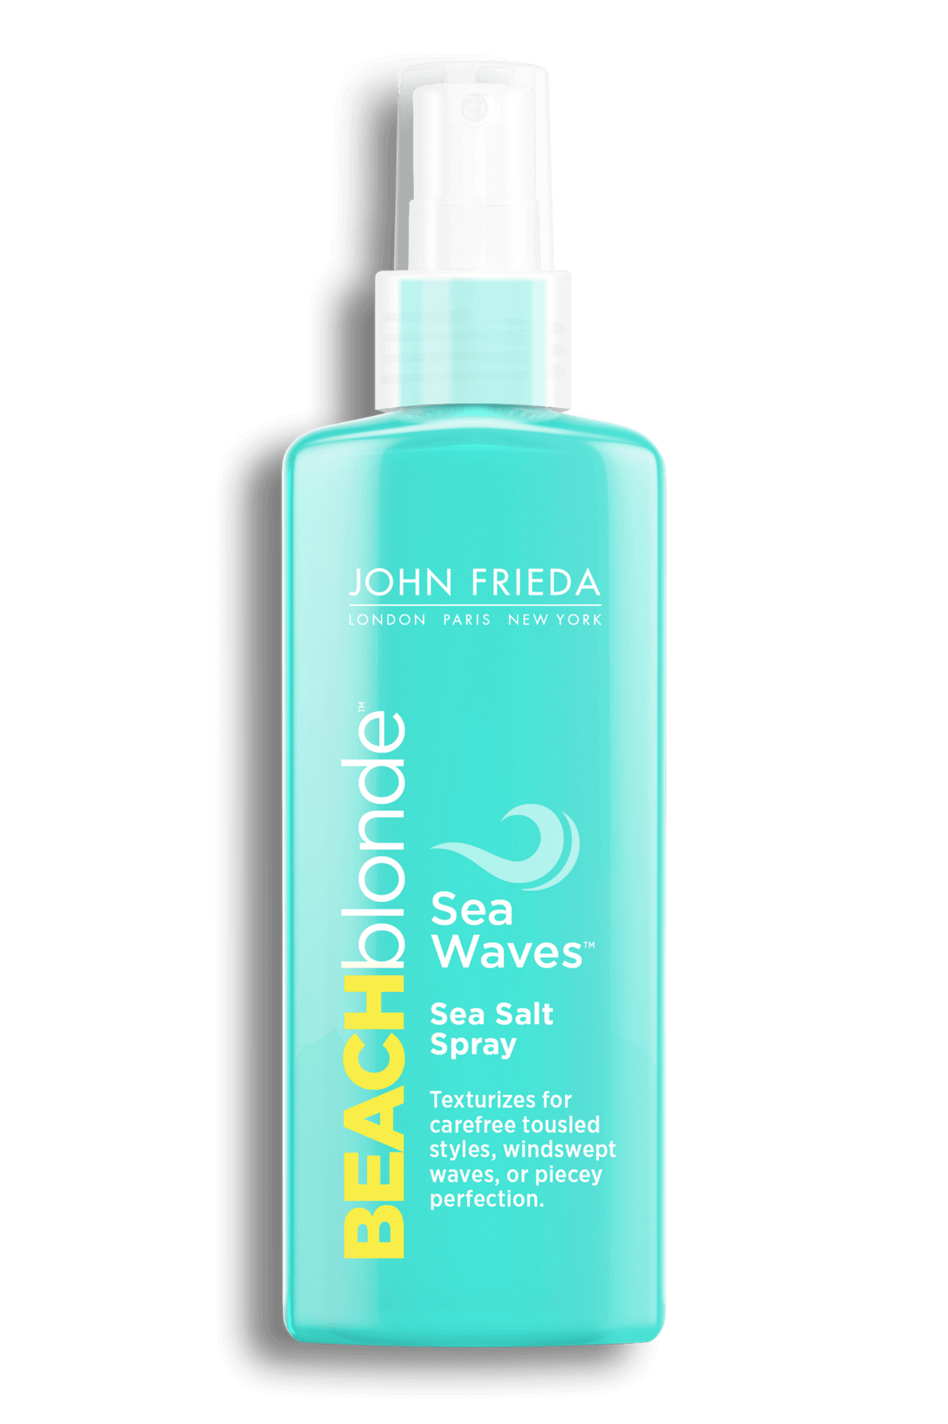 """<p><strong>John Frieda</strong></p><p>amazon.com</p><p><strong>$14.00</strong></p><p><a href=""""https://www.amazon.com/dp/B00P1NBL40?tag=syn-yahoo-20&ascsubtag=%5Bartid%7C10058.g.2902%5Bsrc%7Cyahoo-us"""" rel=""""nofollow noopener"""" target=""""_blank"""" data-ylk=""""slk:SHOP IT"""" class=""""link rapid-noclick-resp"""">SHOP IT </a></p><p>Don't be fooled by the name—this iconic spray works just as well for any hair color, from brunettes to redheads to raven-haired beauties. The title is a throwback to its '90s counterpart, the O.G. formula that became a decade-long sensation as a result of its ability to create shiny, smooth, piece-y waves in even the straightest of hair. Thankfully, the formula is back and, dare I say, <em>better</em> than before, so you'll be able to get dream-level waves without a time machine.<br></p>"""